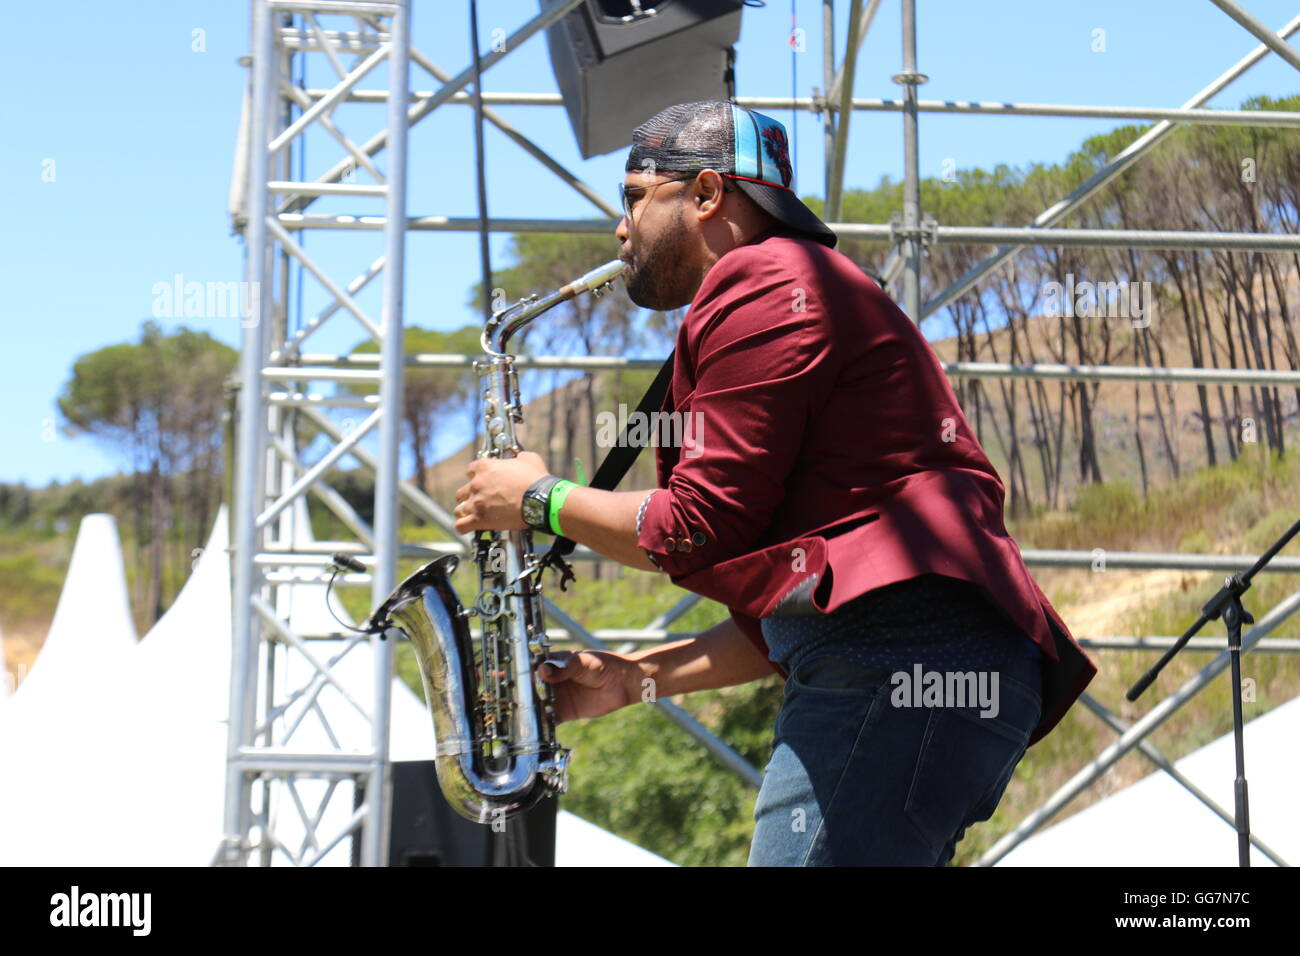 Saxophone player on stage at the 2016 Stellenbosch Wine Festival Stock Photo